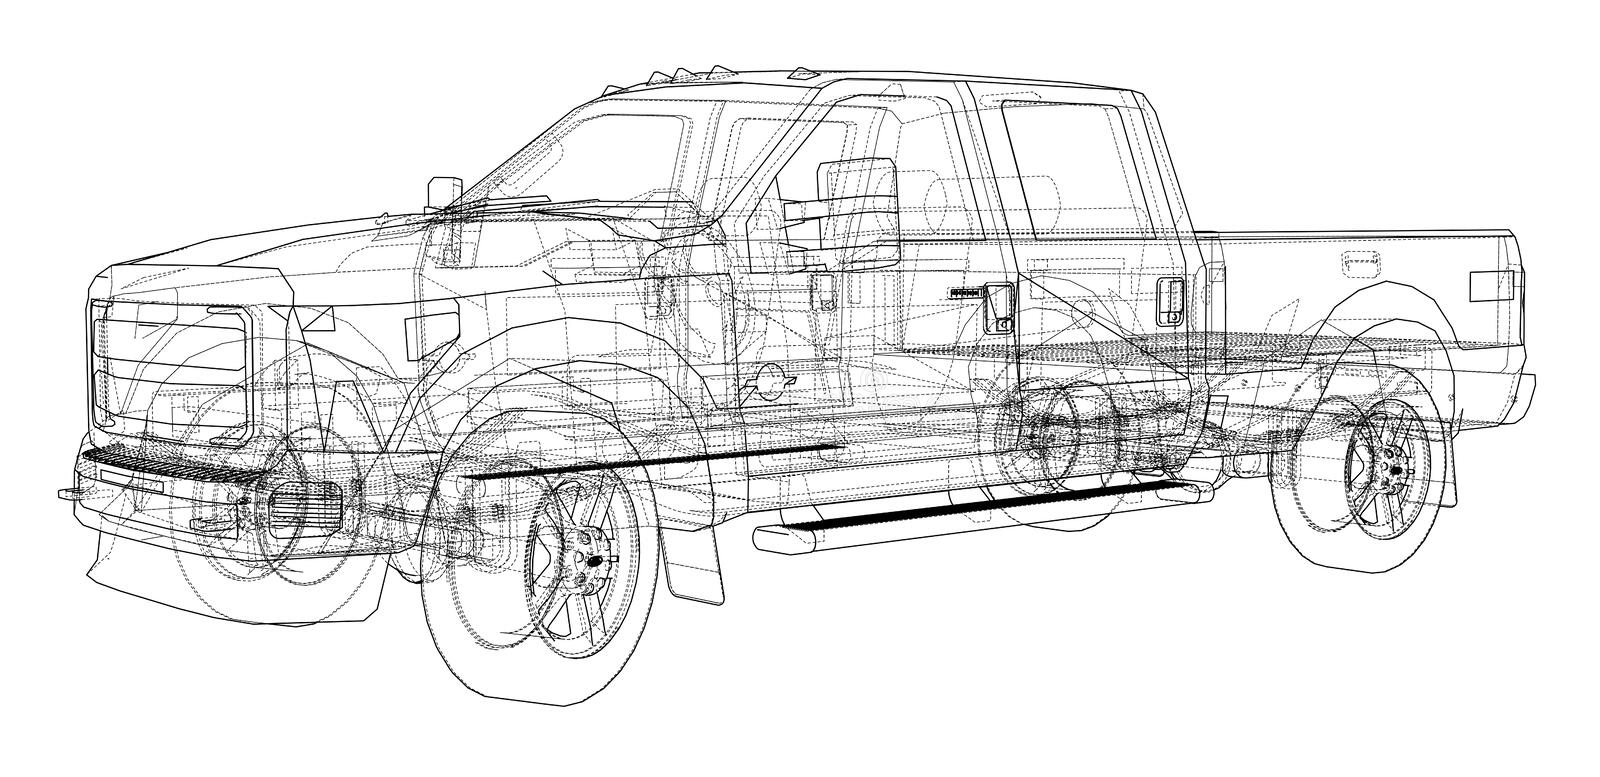 Car suv drawing outline stock illustration illustration of wheel download car suv drawing outline stock illustration illustration of wheel 113671271 malvernweather Choice Image